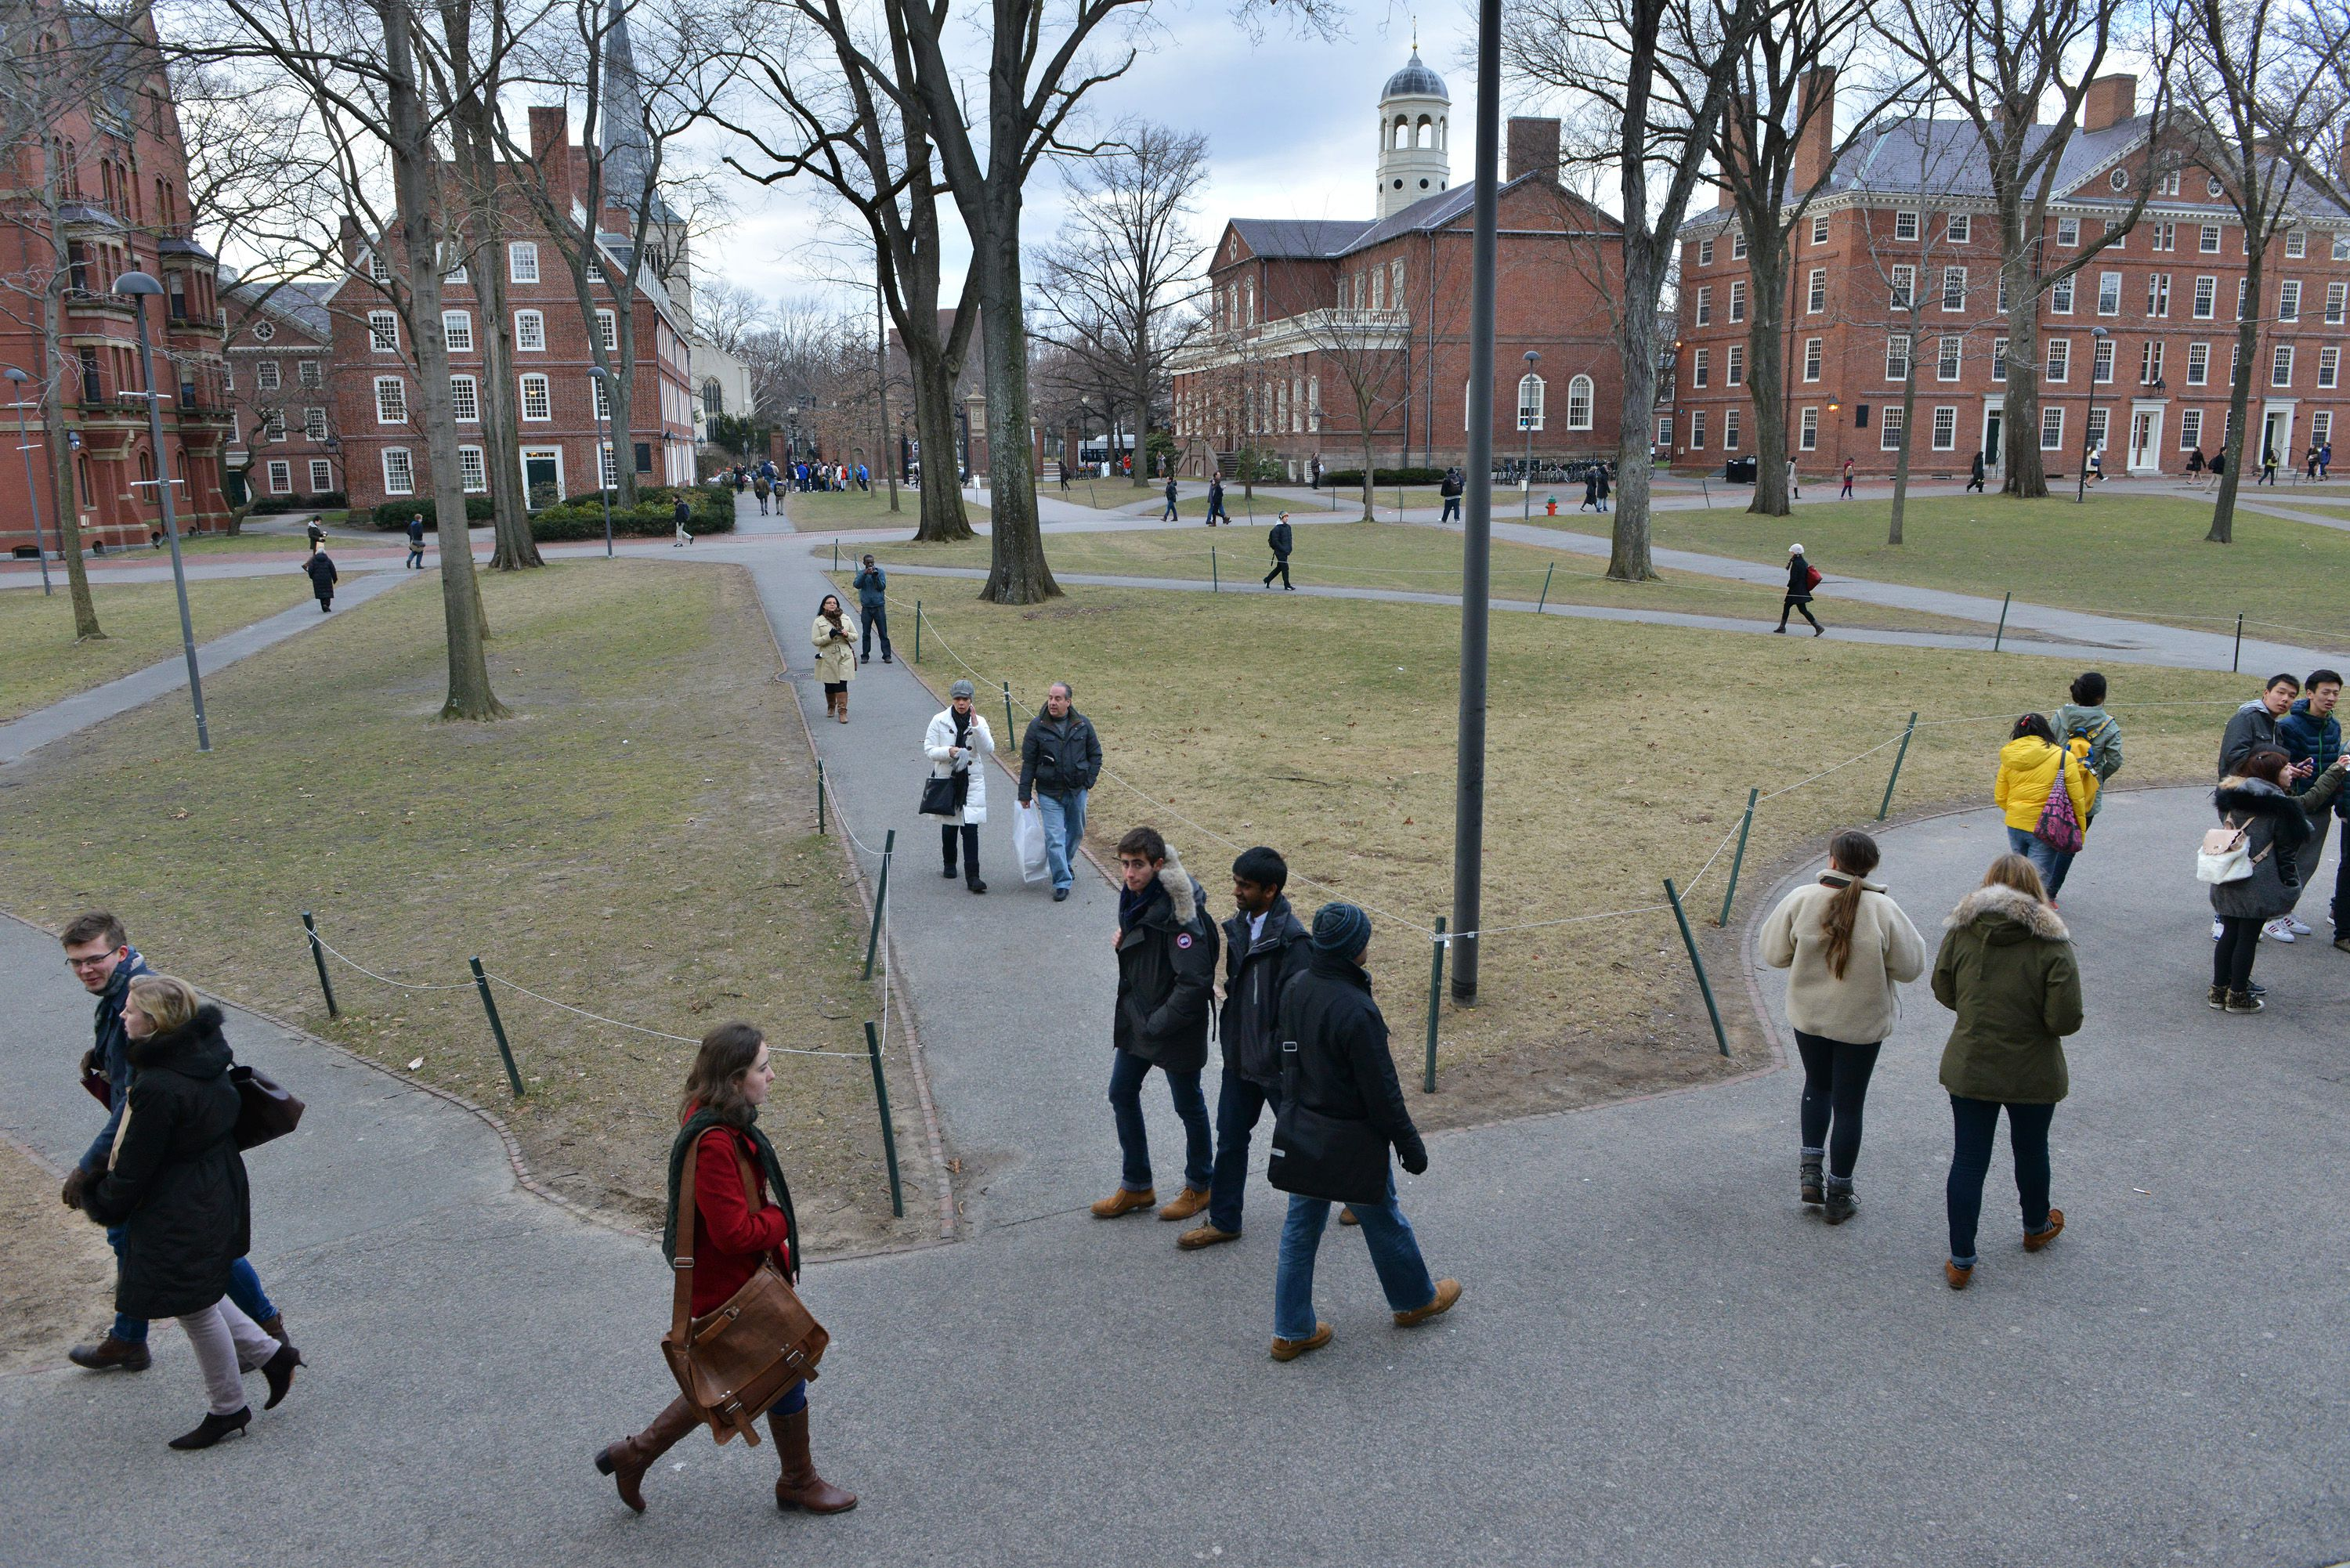 For Harvard College, the acceptance rate dips below 5